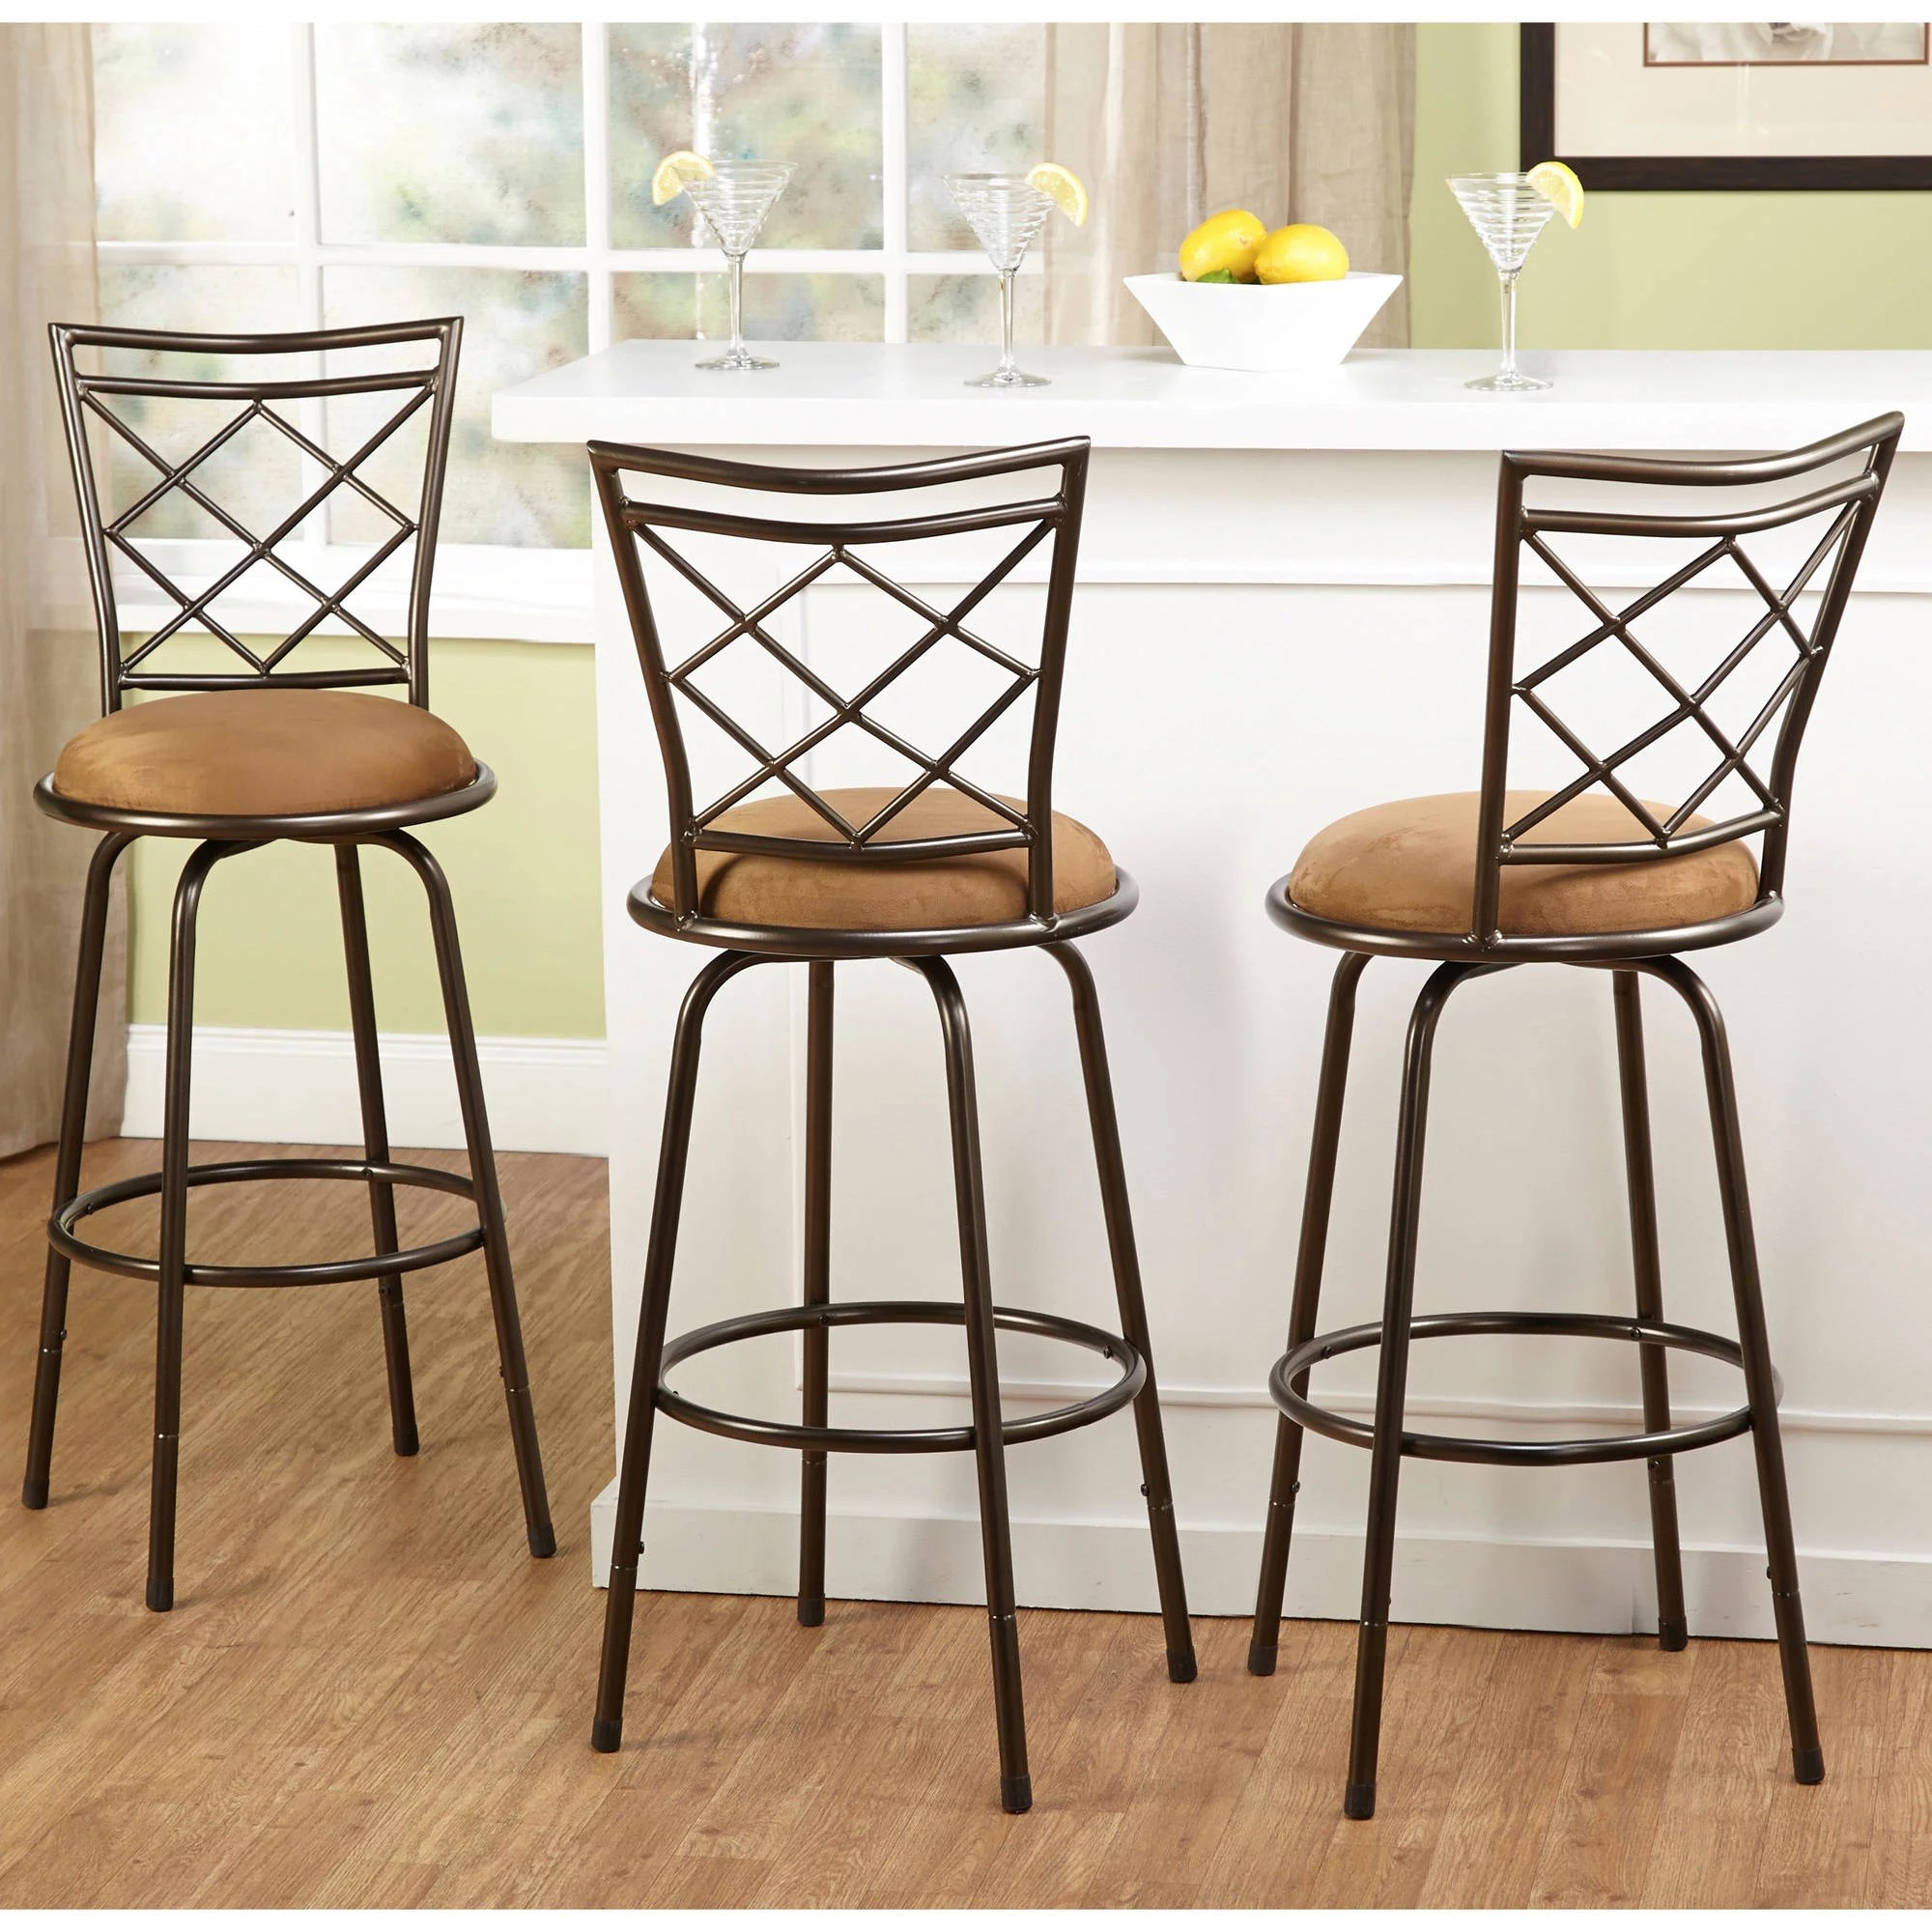 Kitchen Bar Stools On Sale Tms Avery Adjustable Height Bar Stool Multiple Colors Set Of 3